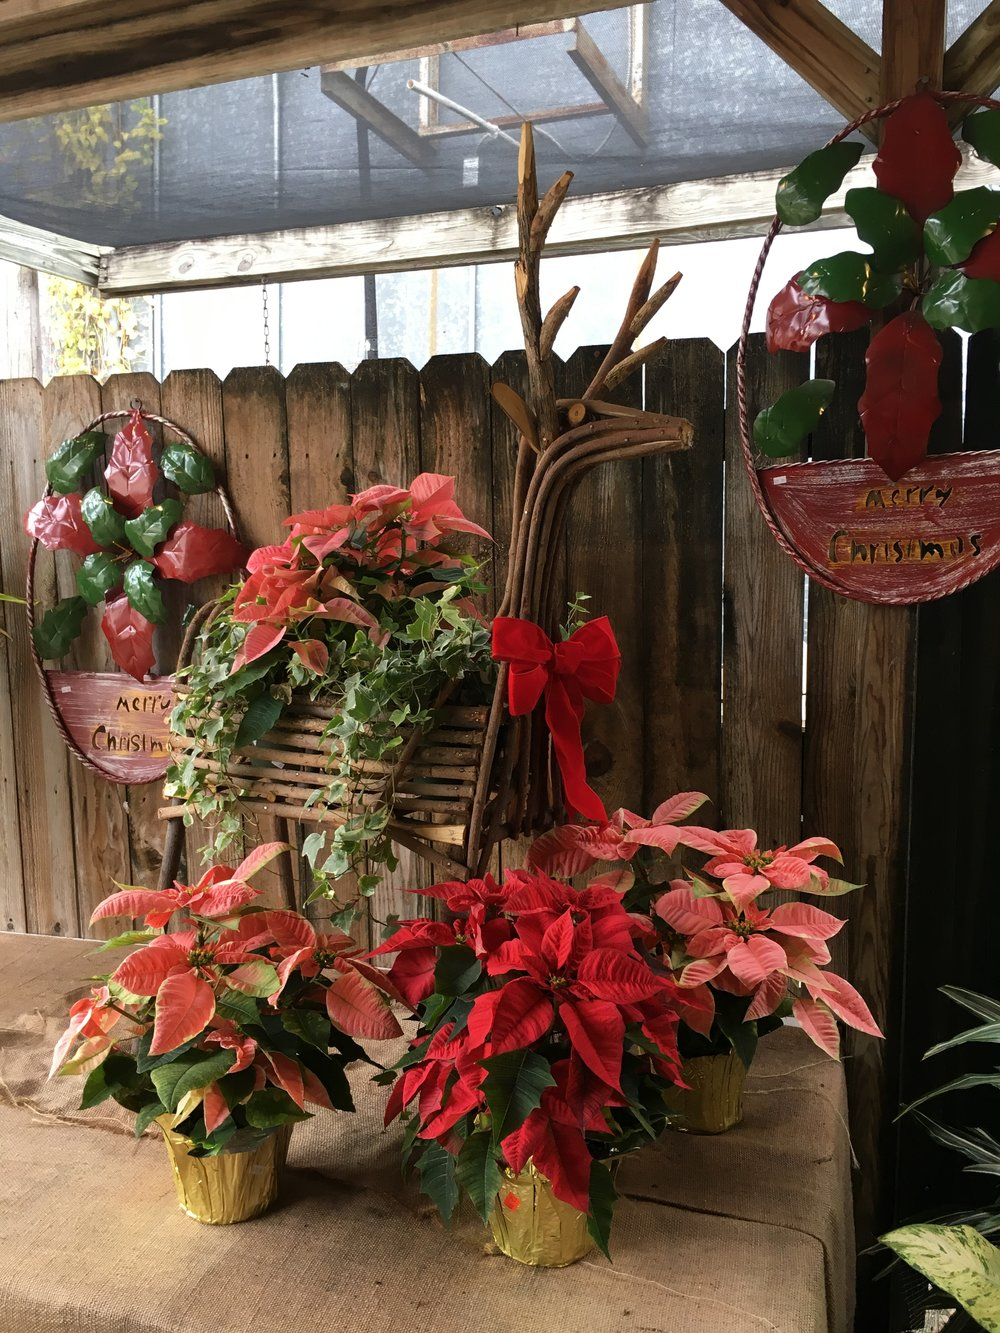 Come by the shop for the best selection of poinsettias in town!